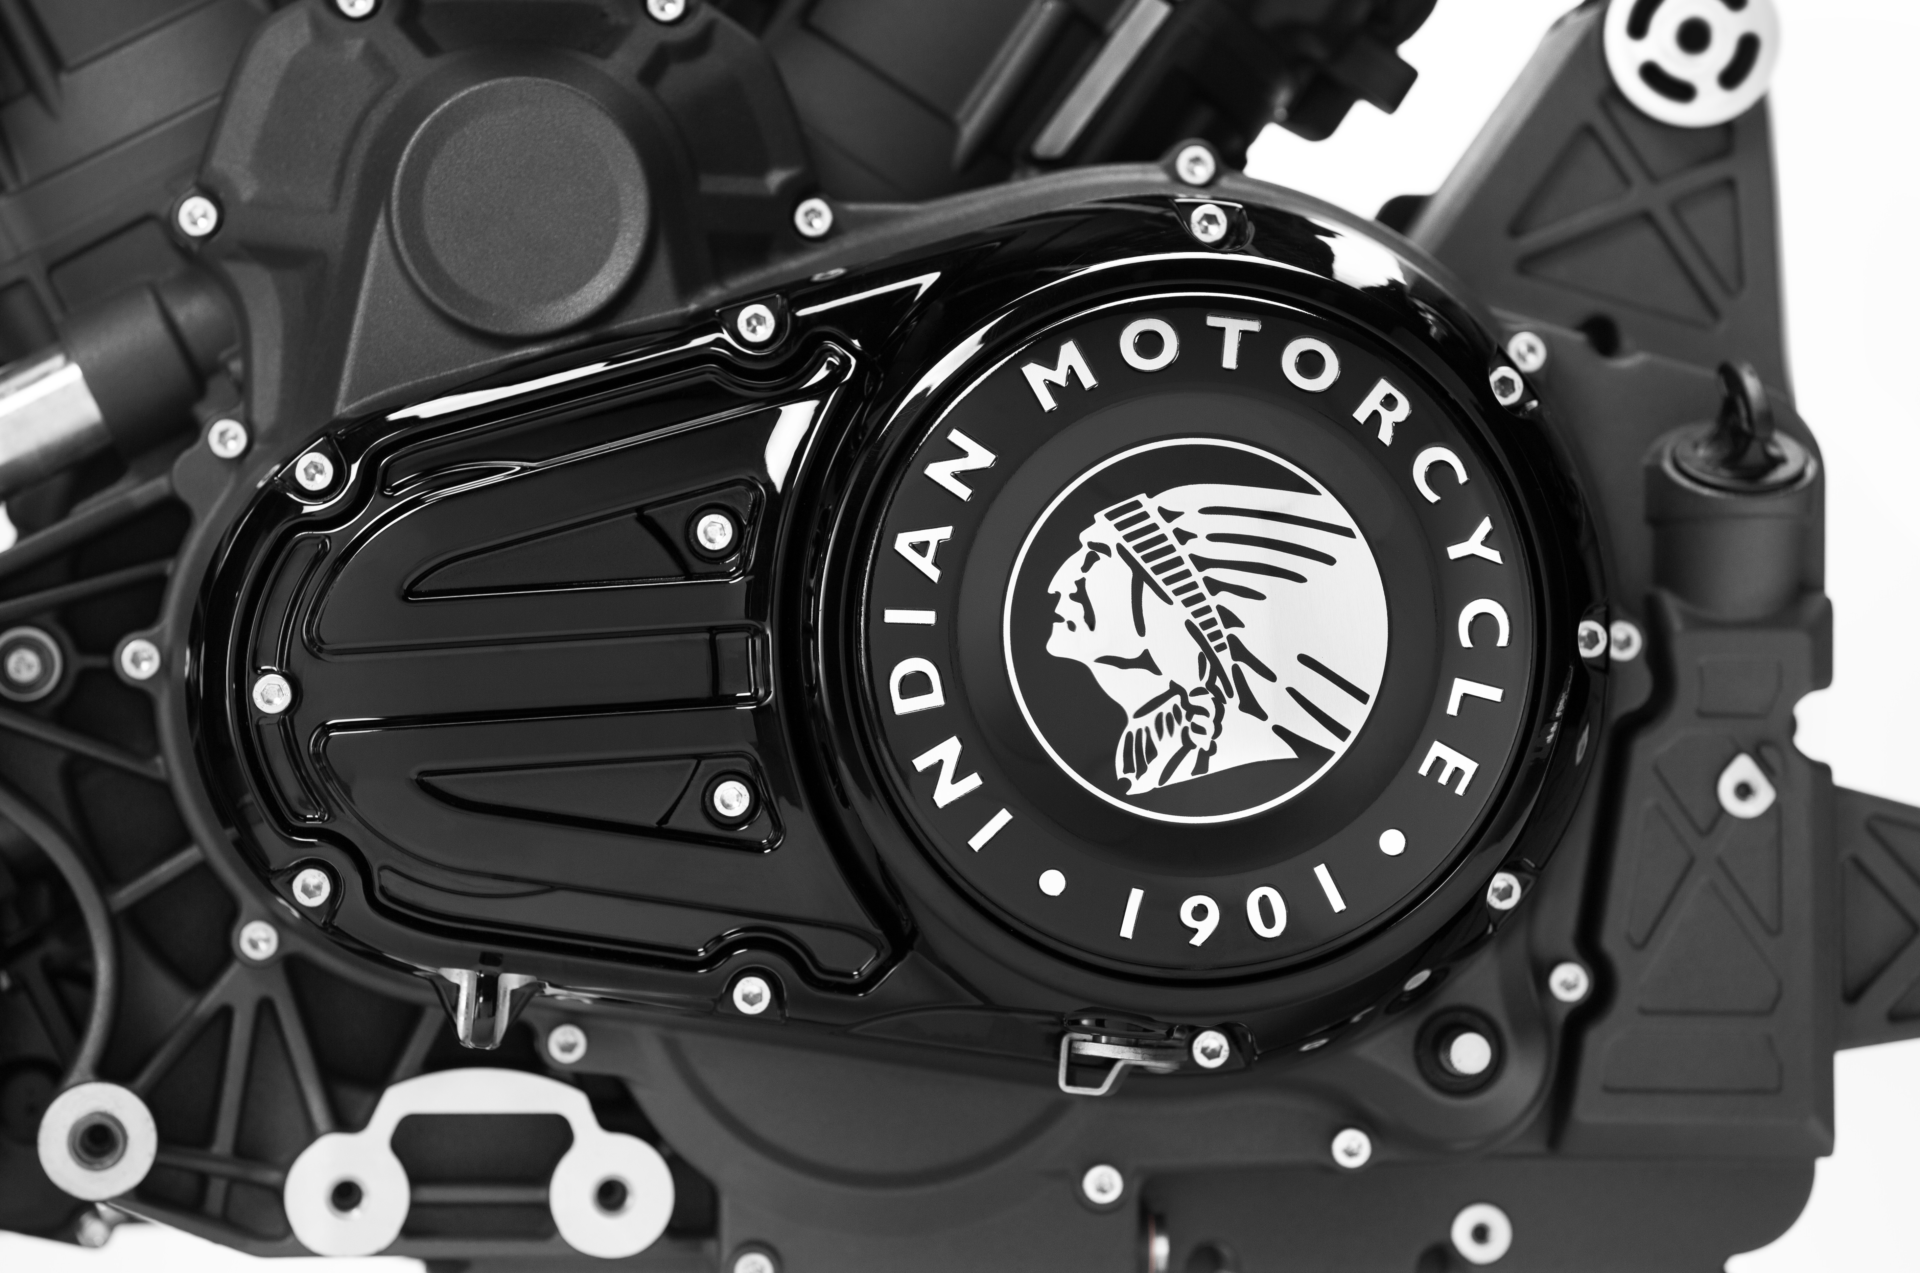 The case cover of Indian Motorcycle's new PowerPlus V-Twin engine. Photo courtesy of Indian Motorcycle.